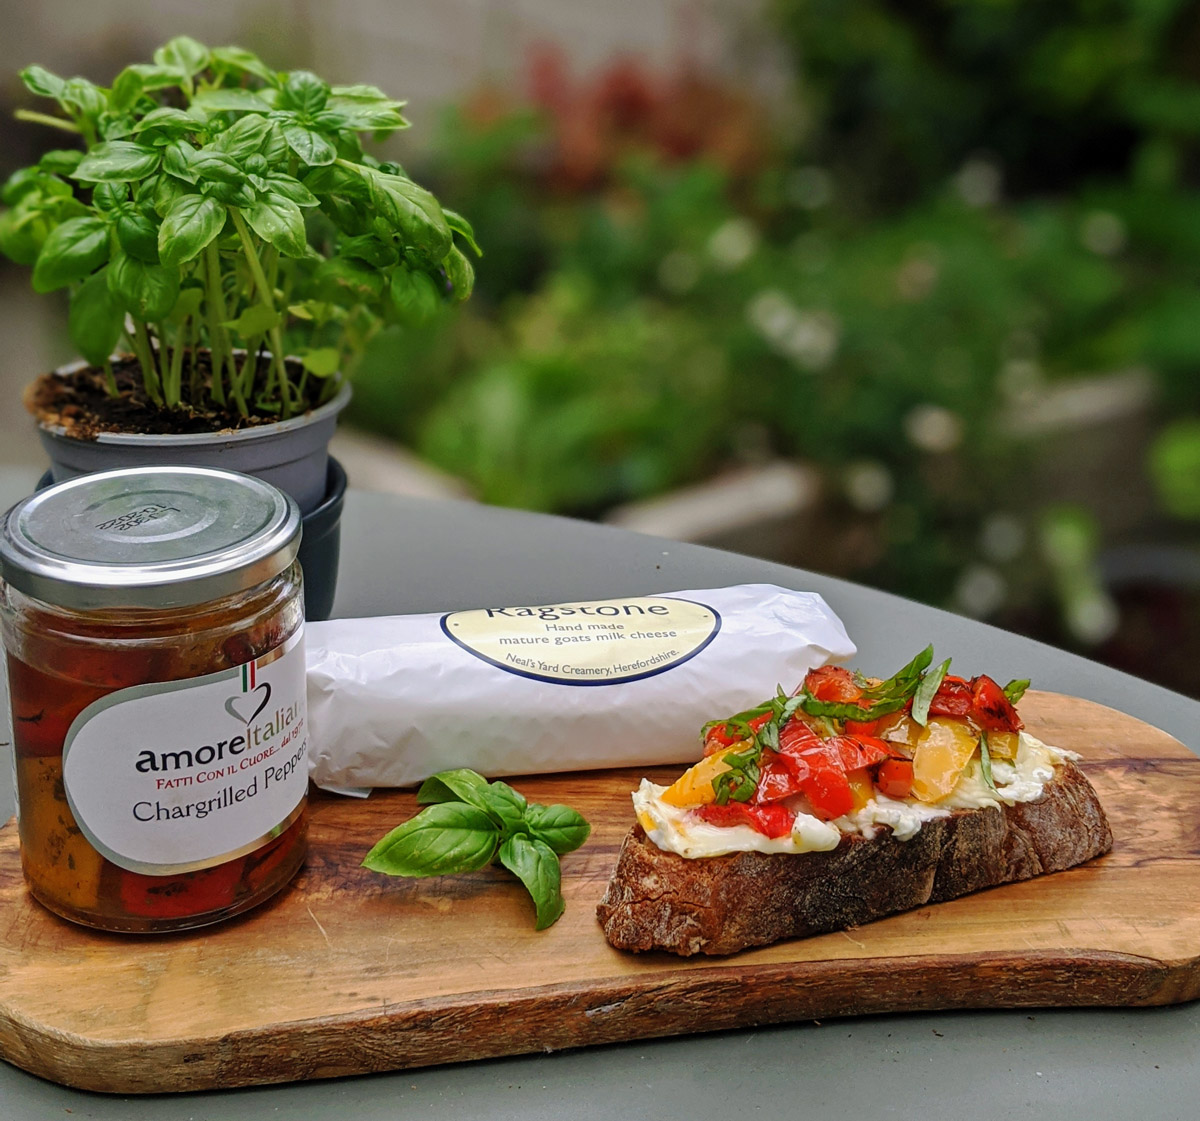 Goats Cheese and Red Pepper Tartine